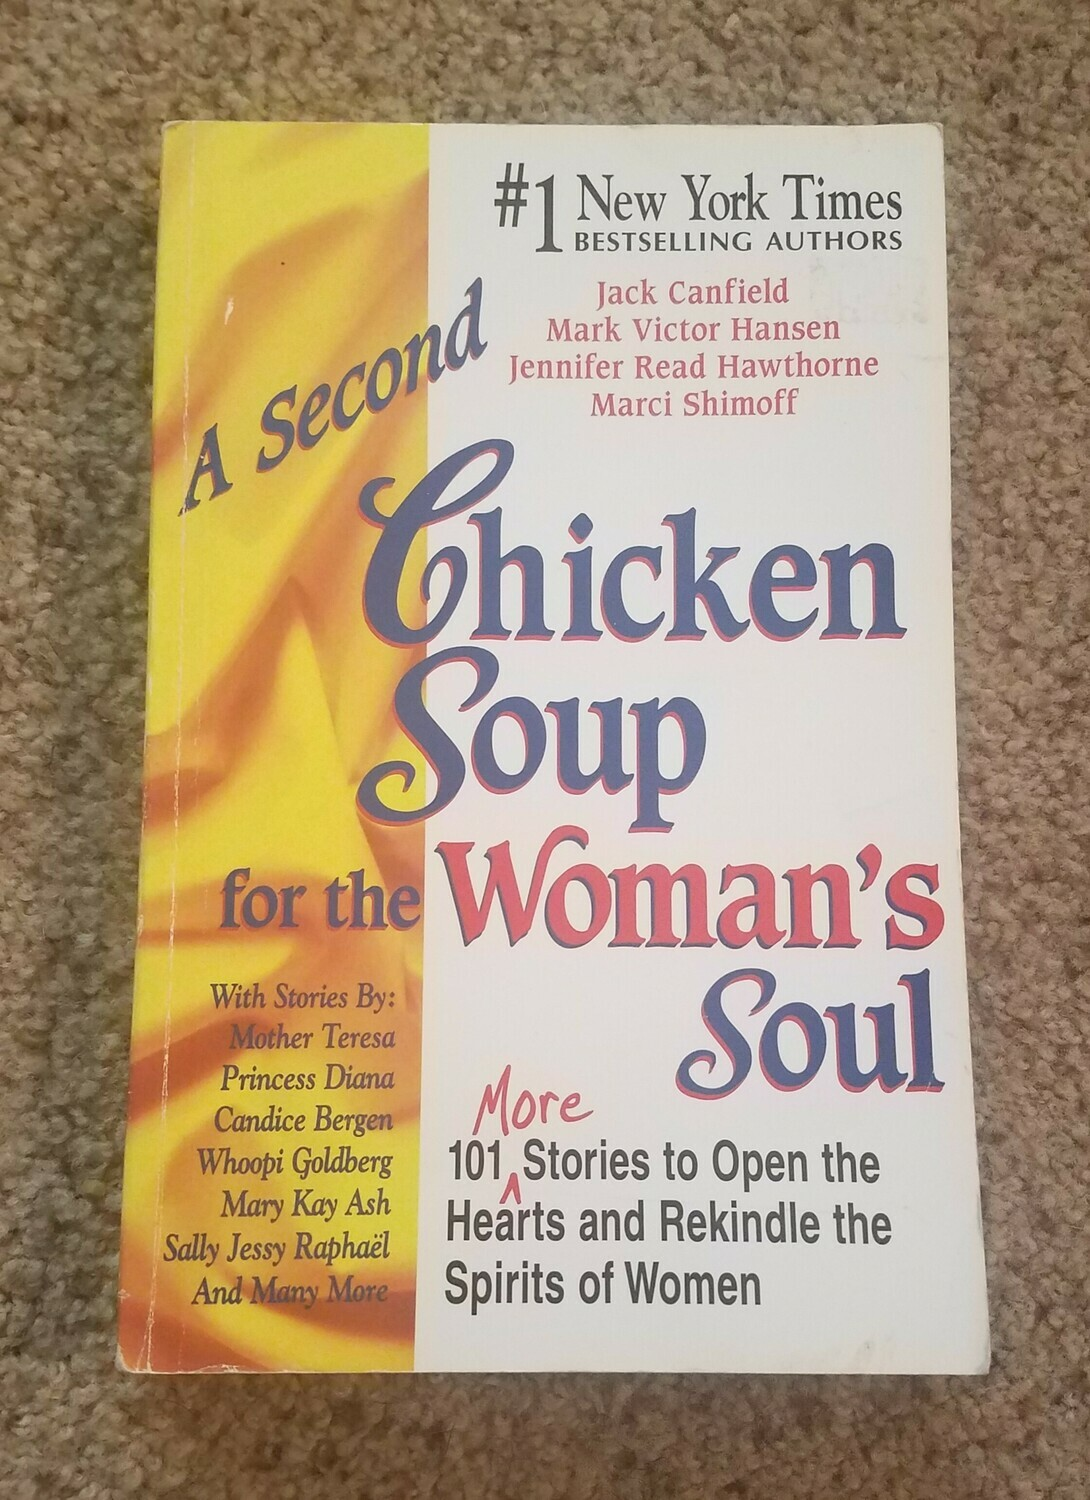 A Second Chicken Soup for the Woman's Soul by Jack Canfield, Mark Victor Hansen, Jennifer Read Hawthorne, and Marci Shimoff